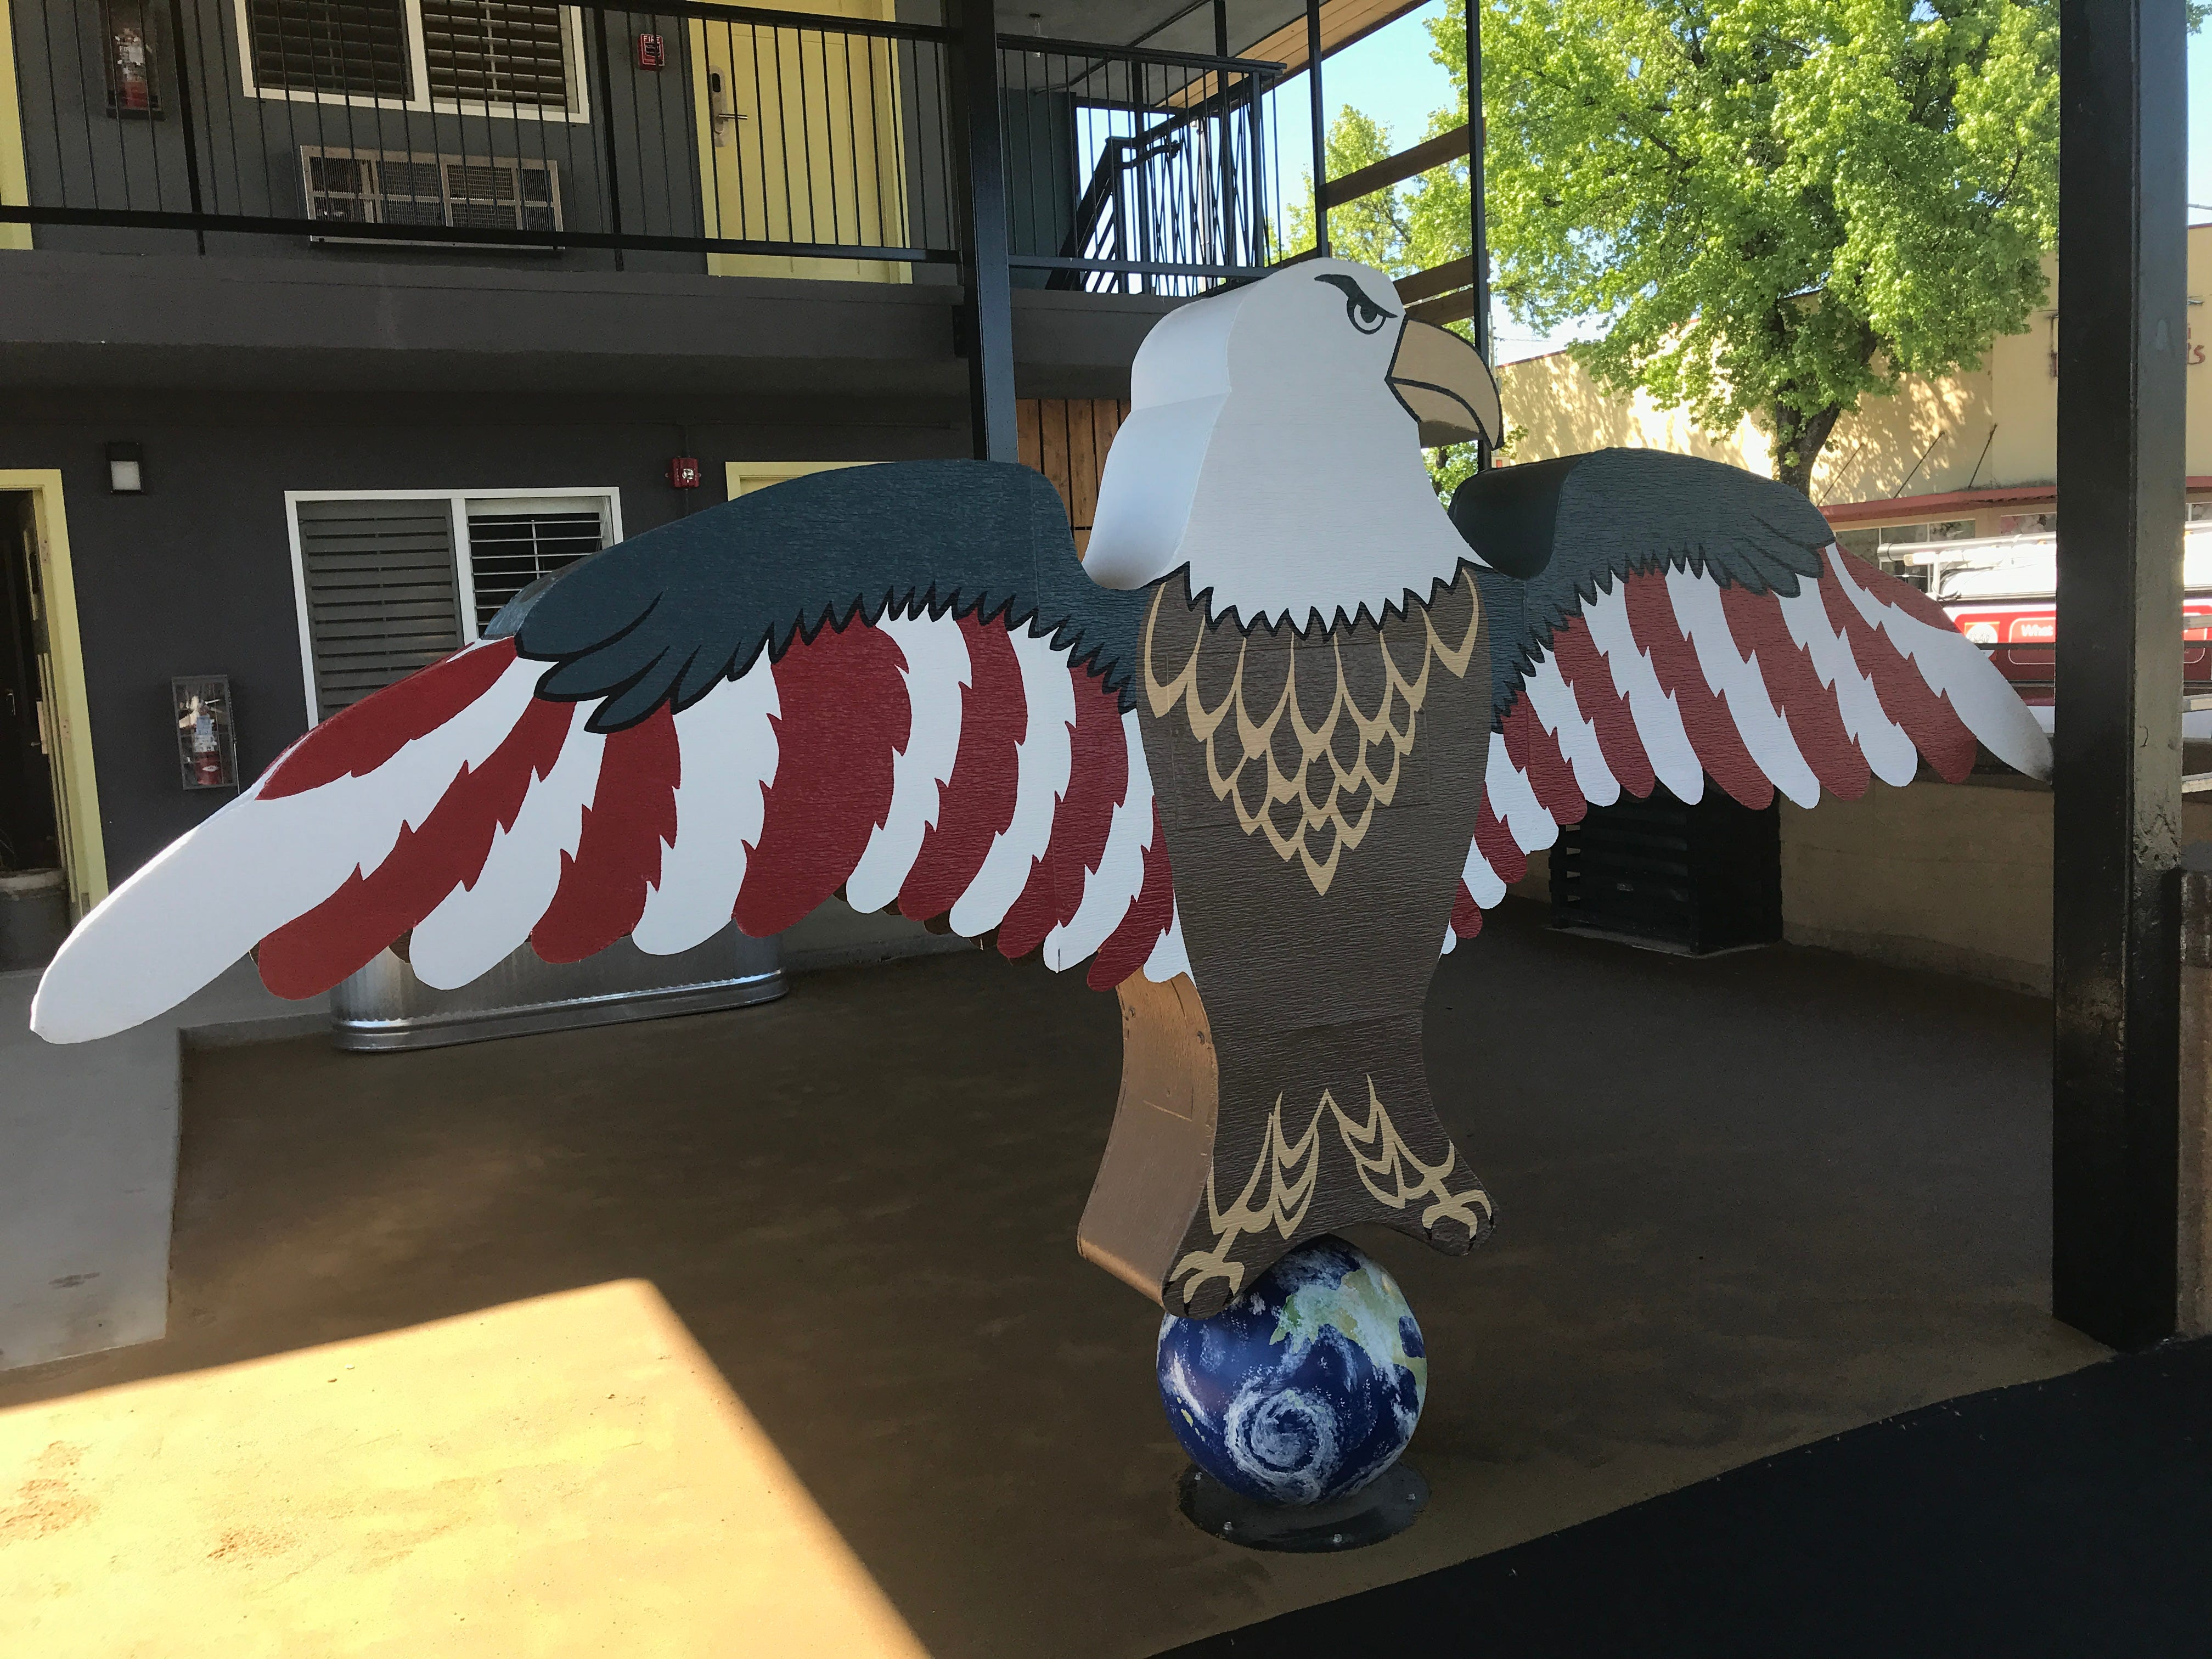 This is the eagle that used to be perched atop the old Americana Lodge sign. It has been repainted and placed near the Market Street entrance.